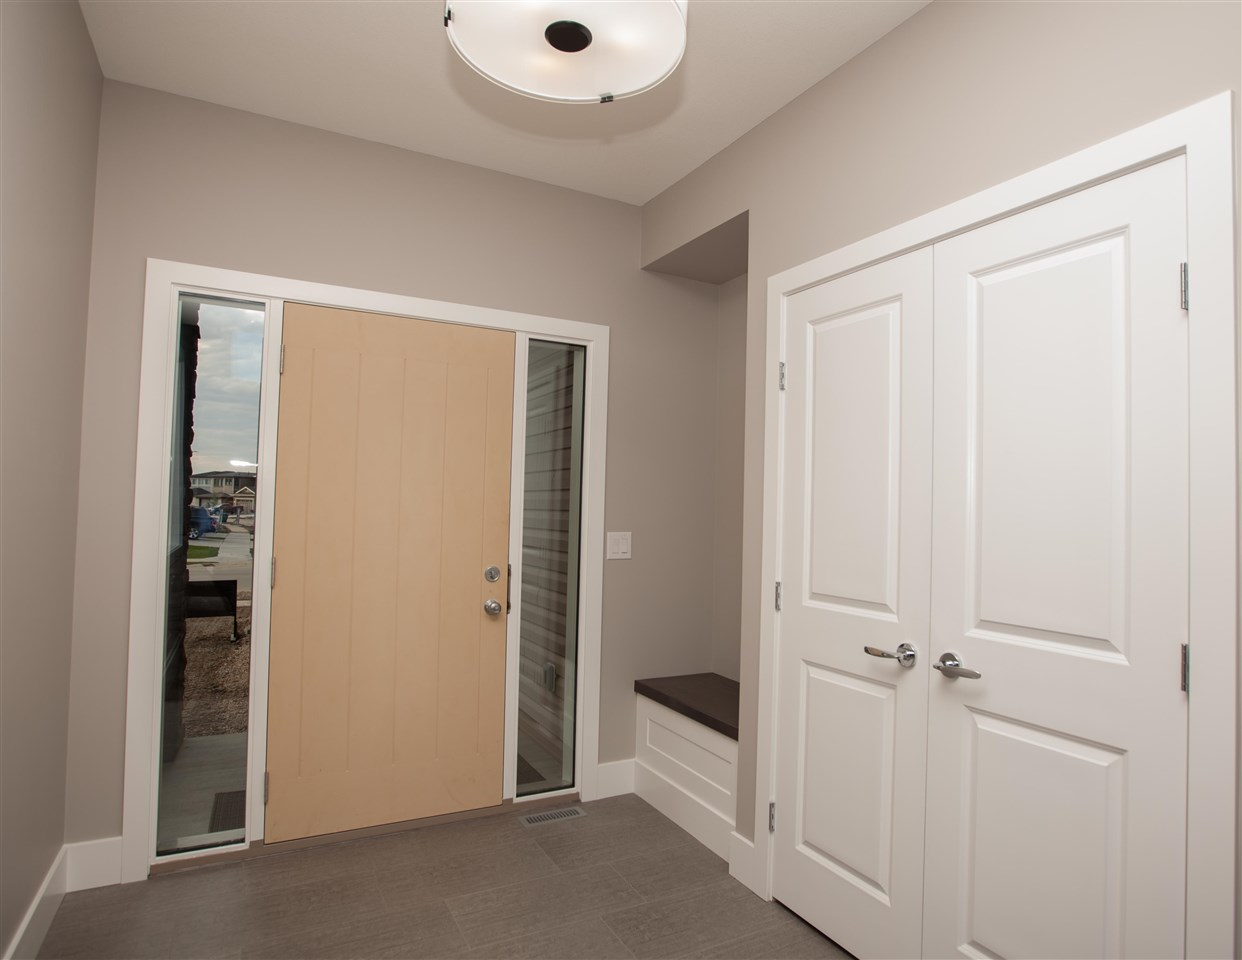 Photo 2: 29 Enchanted Way: St. Albert House for sale : MLS® # E4066386